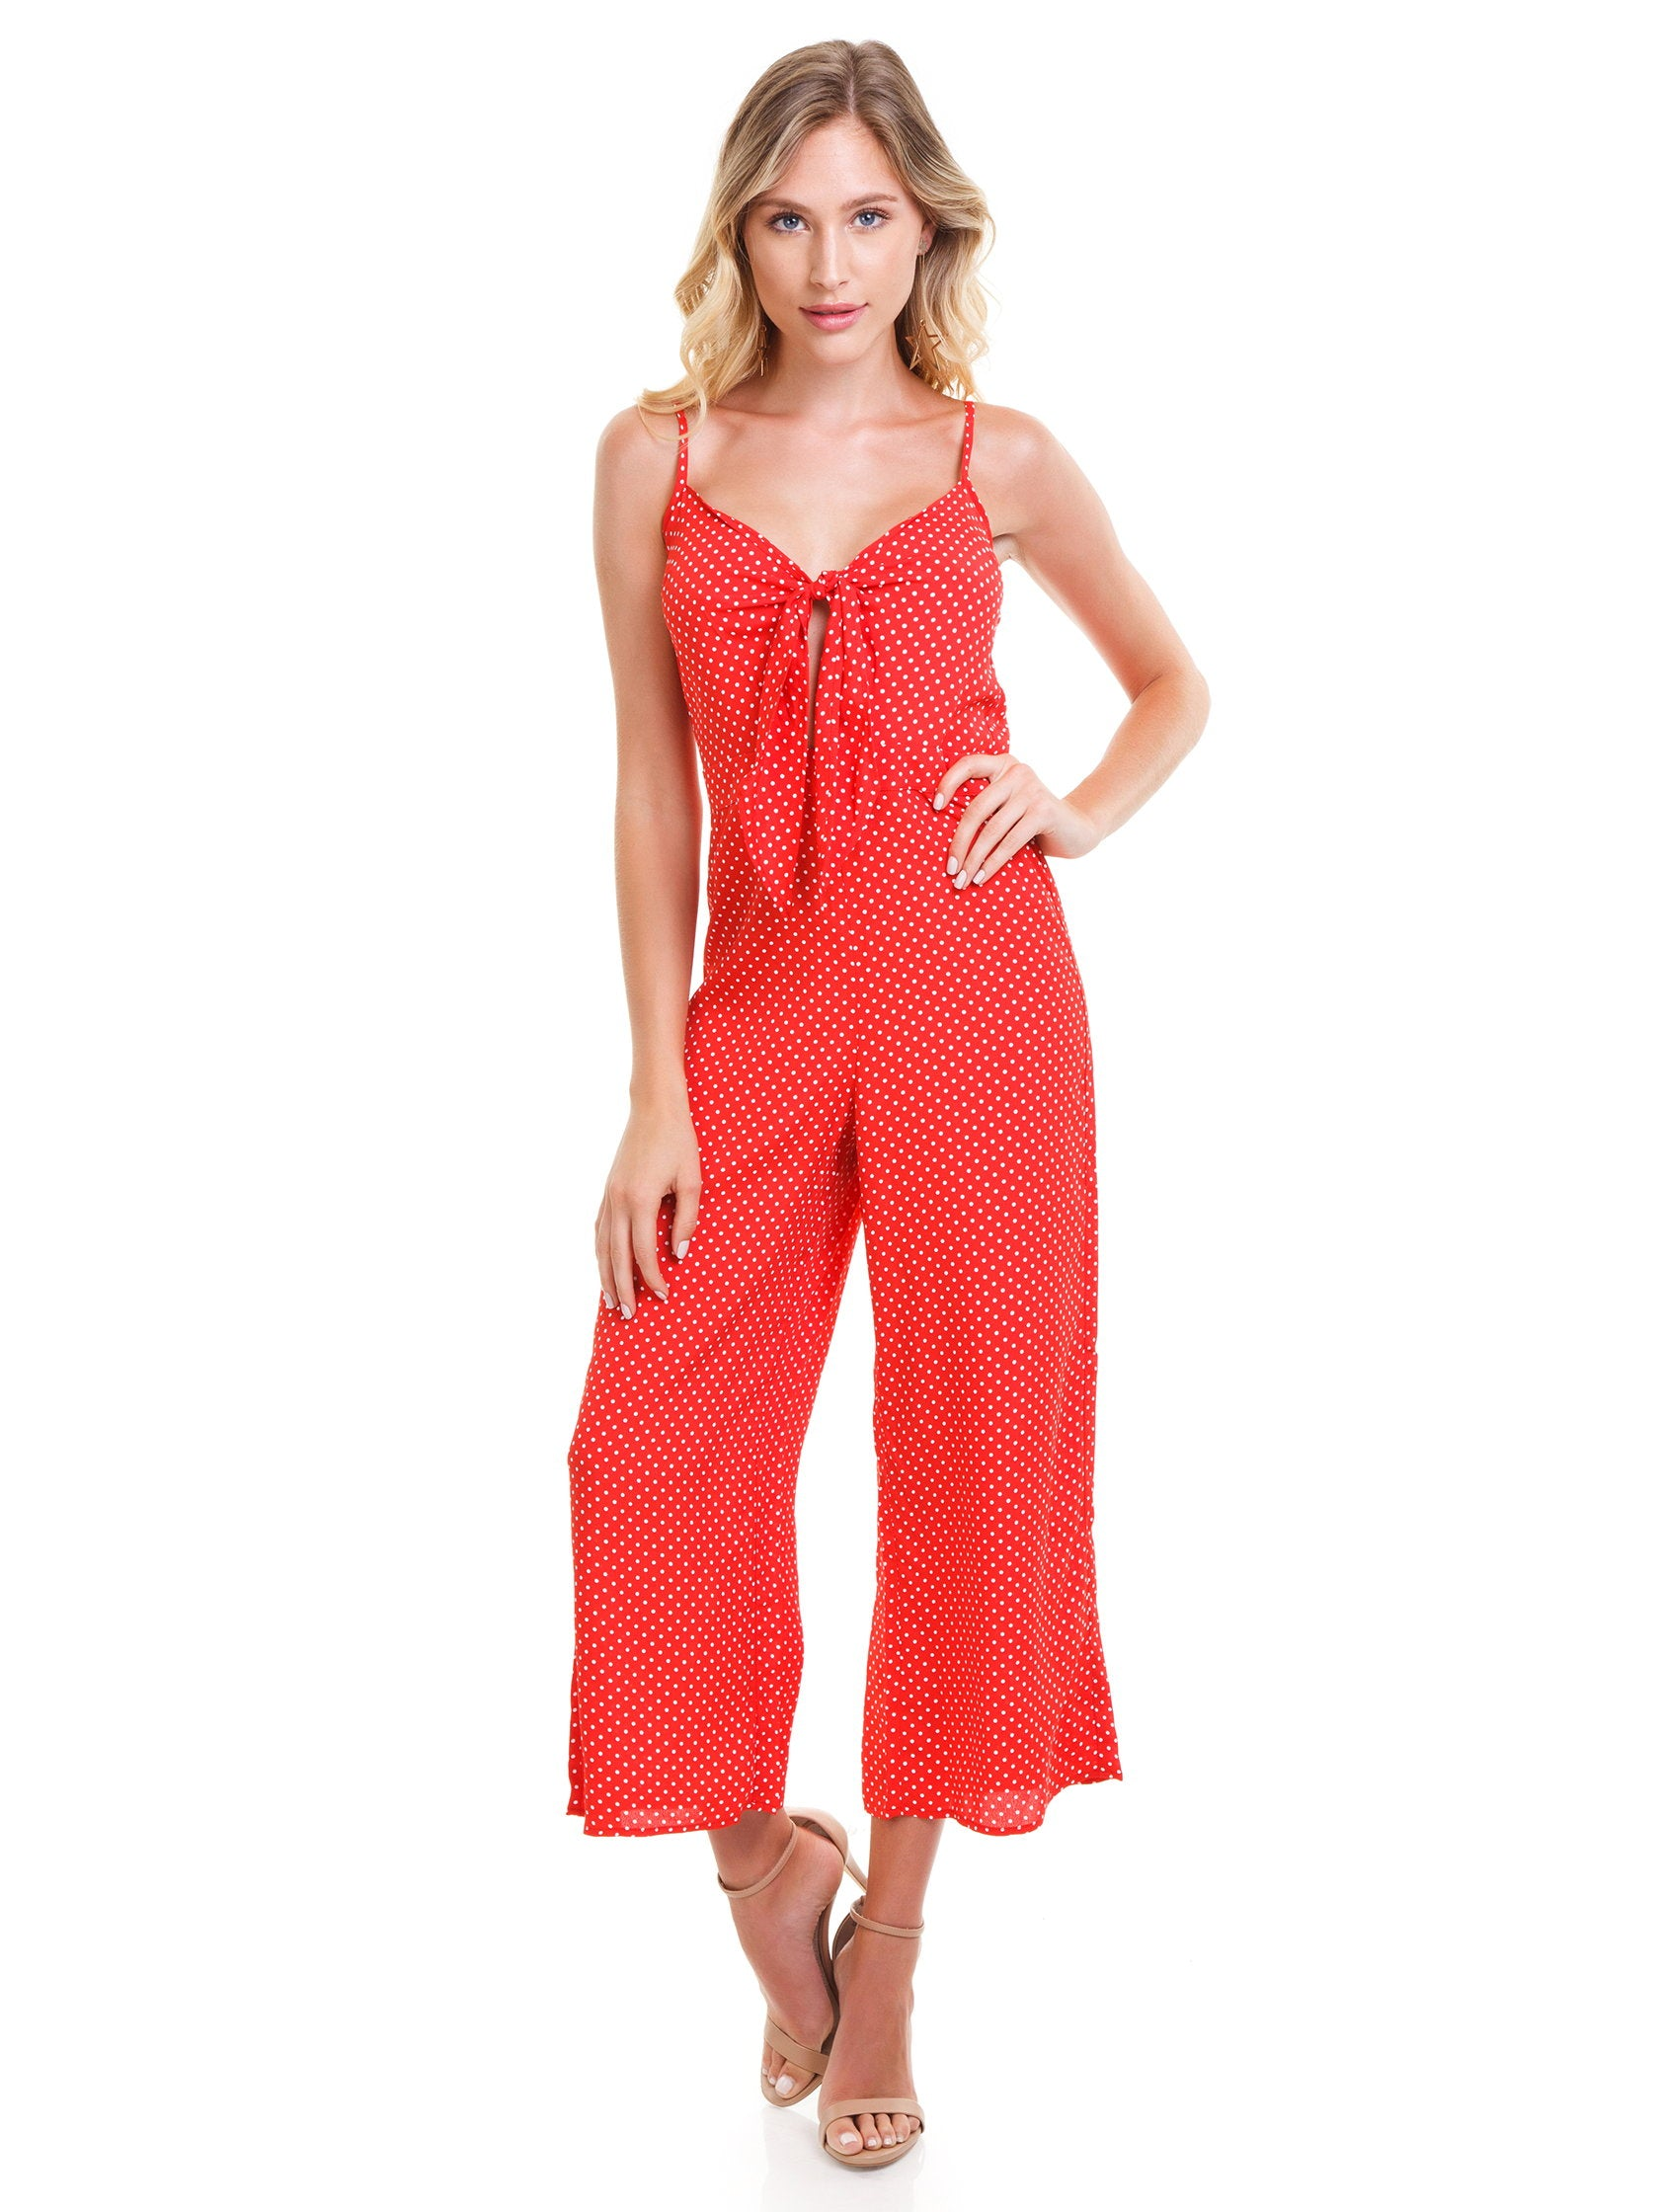 Girl outfit in a jumpsuit rental from Blue Life called Tied Up Jumpsuit